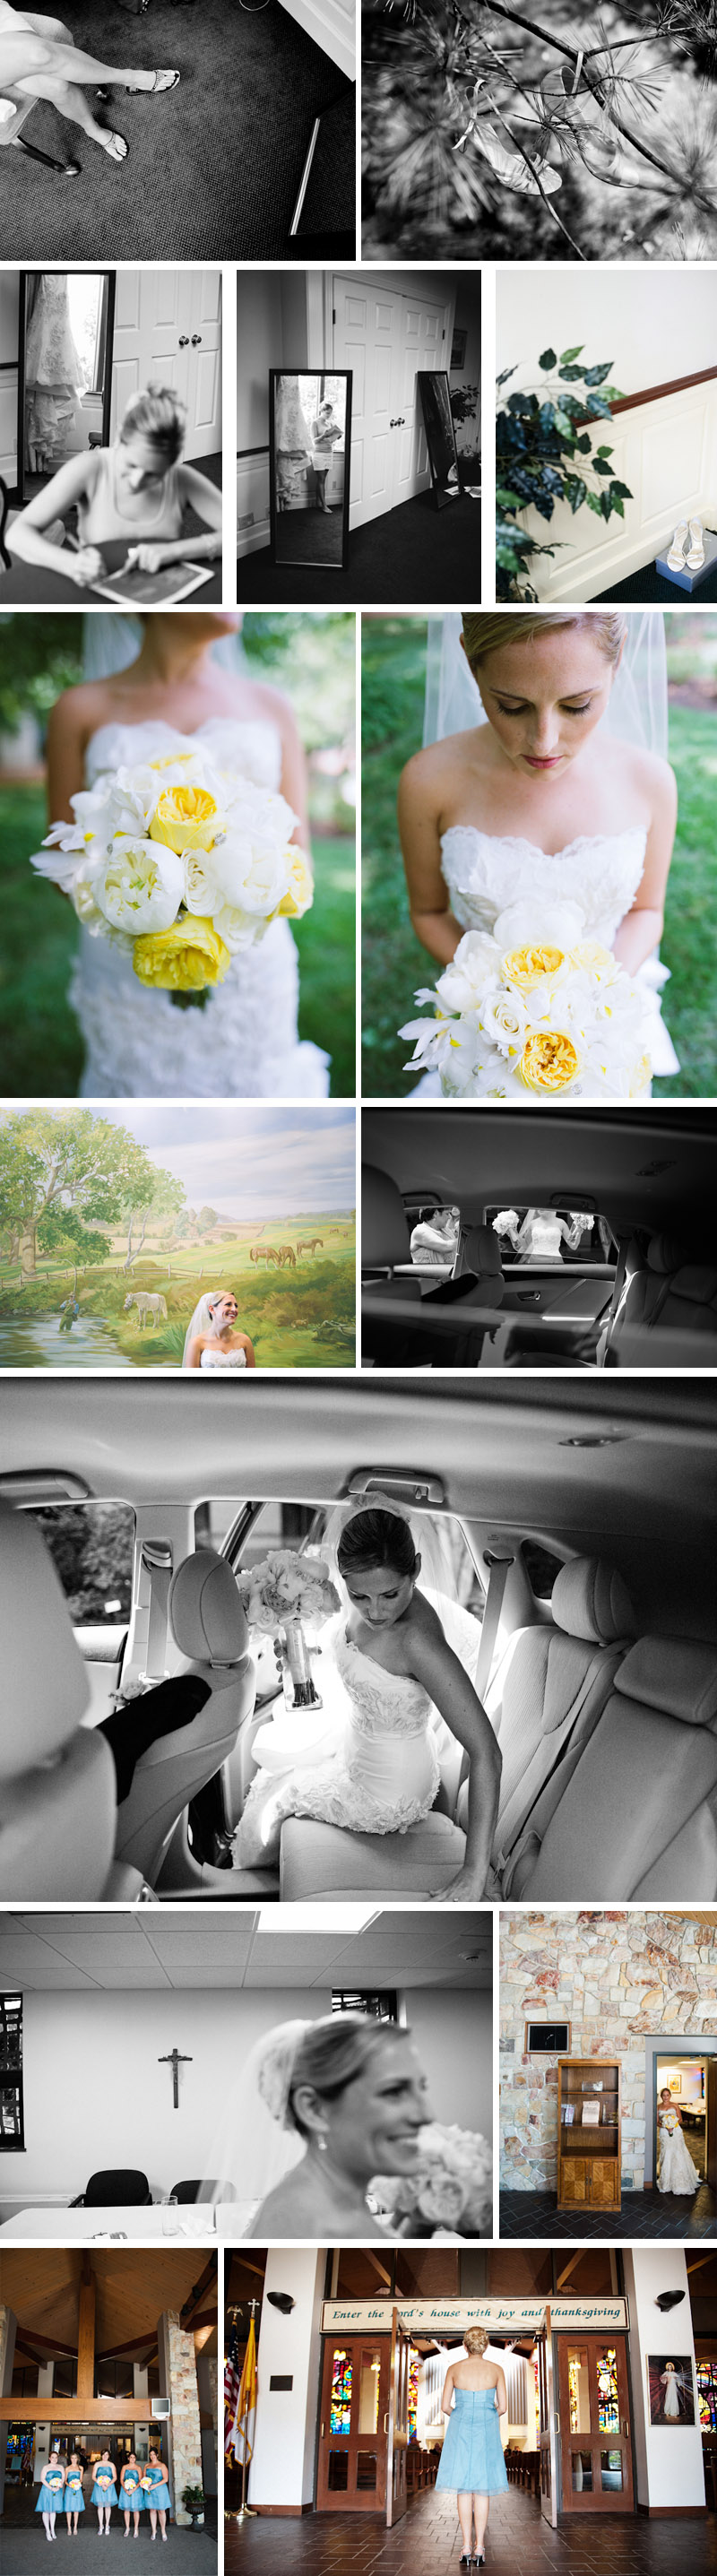 Wedding Photography from Ash Imagery taken in Devon PA